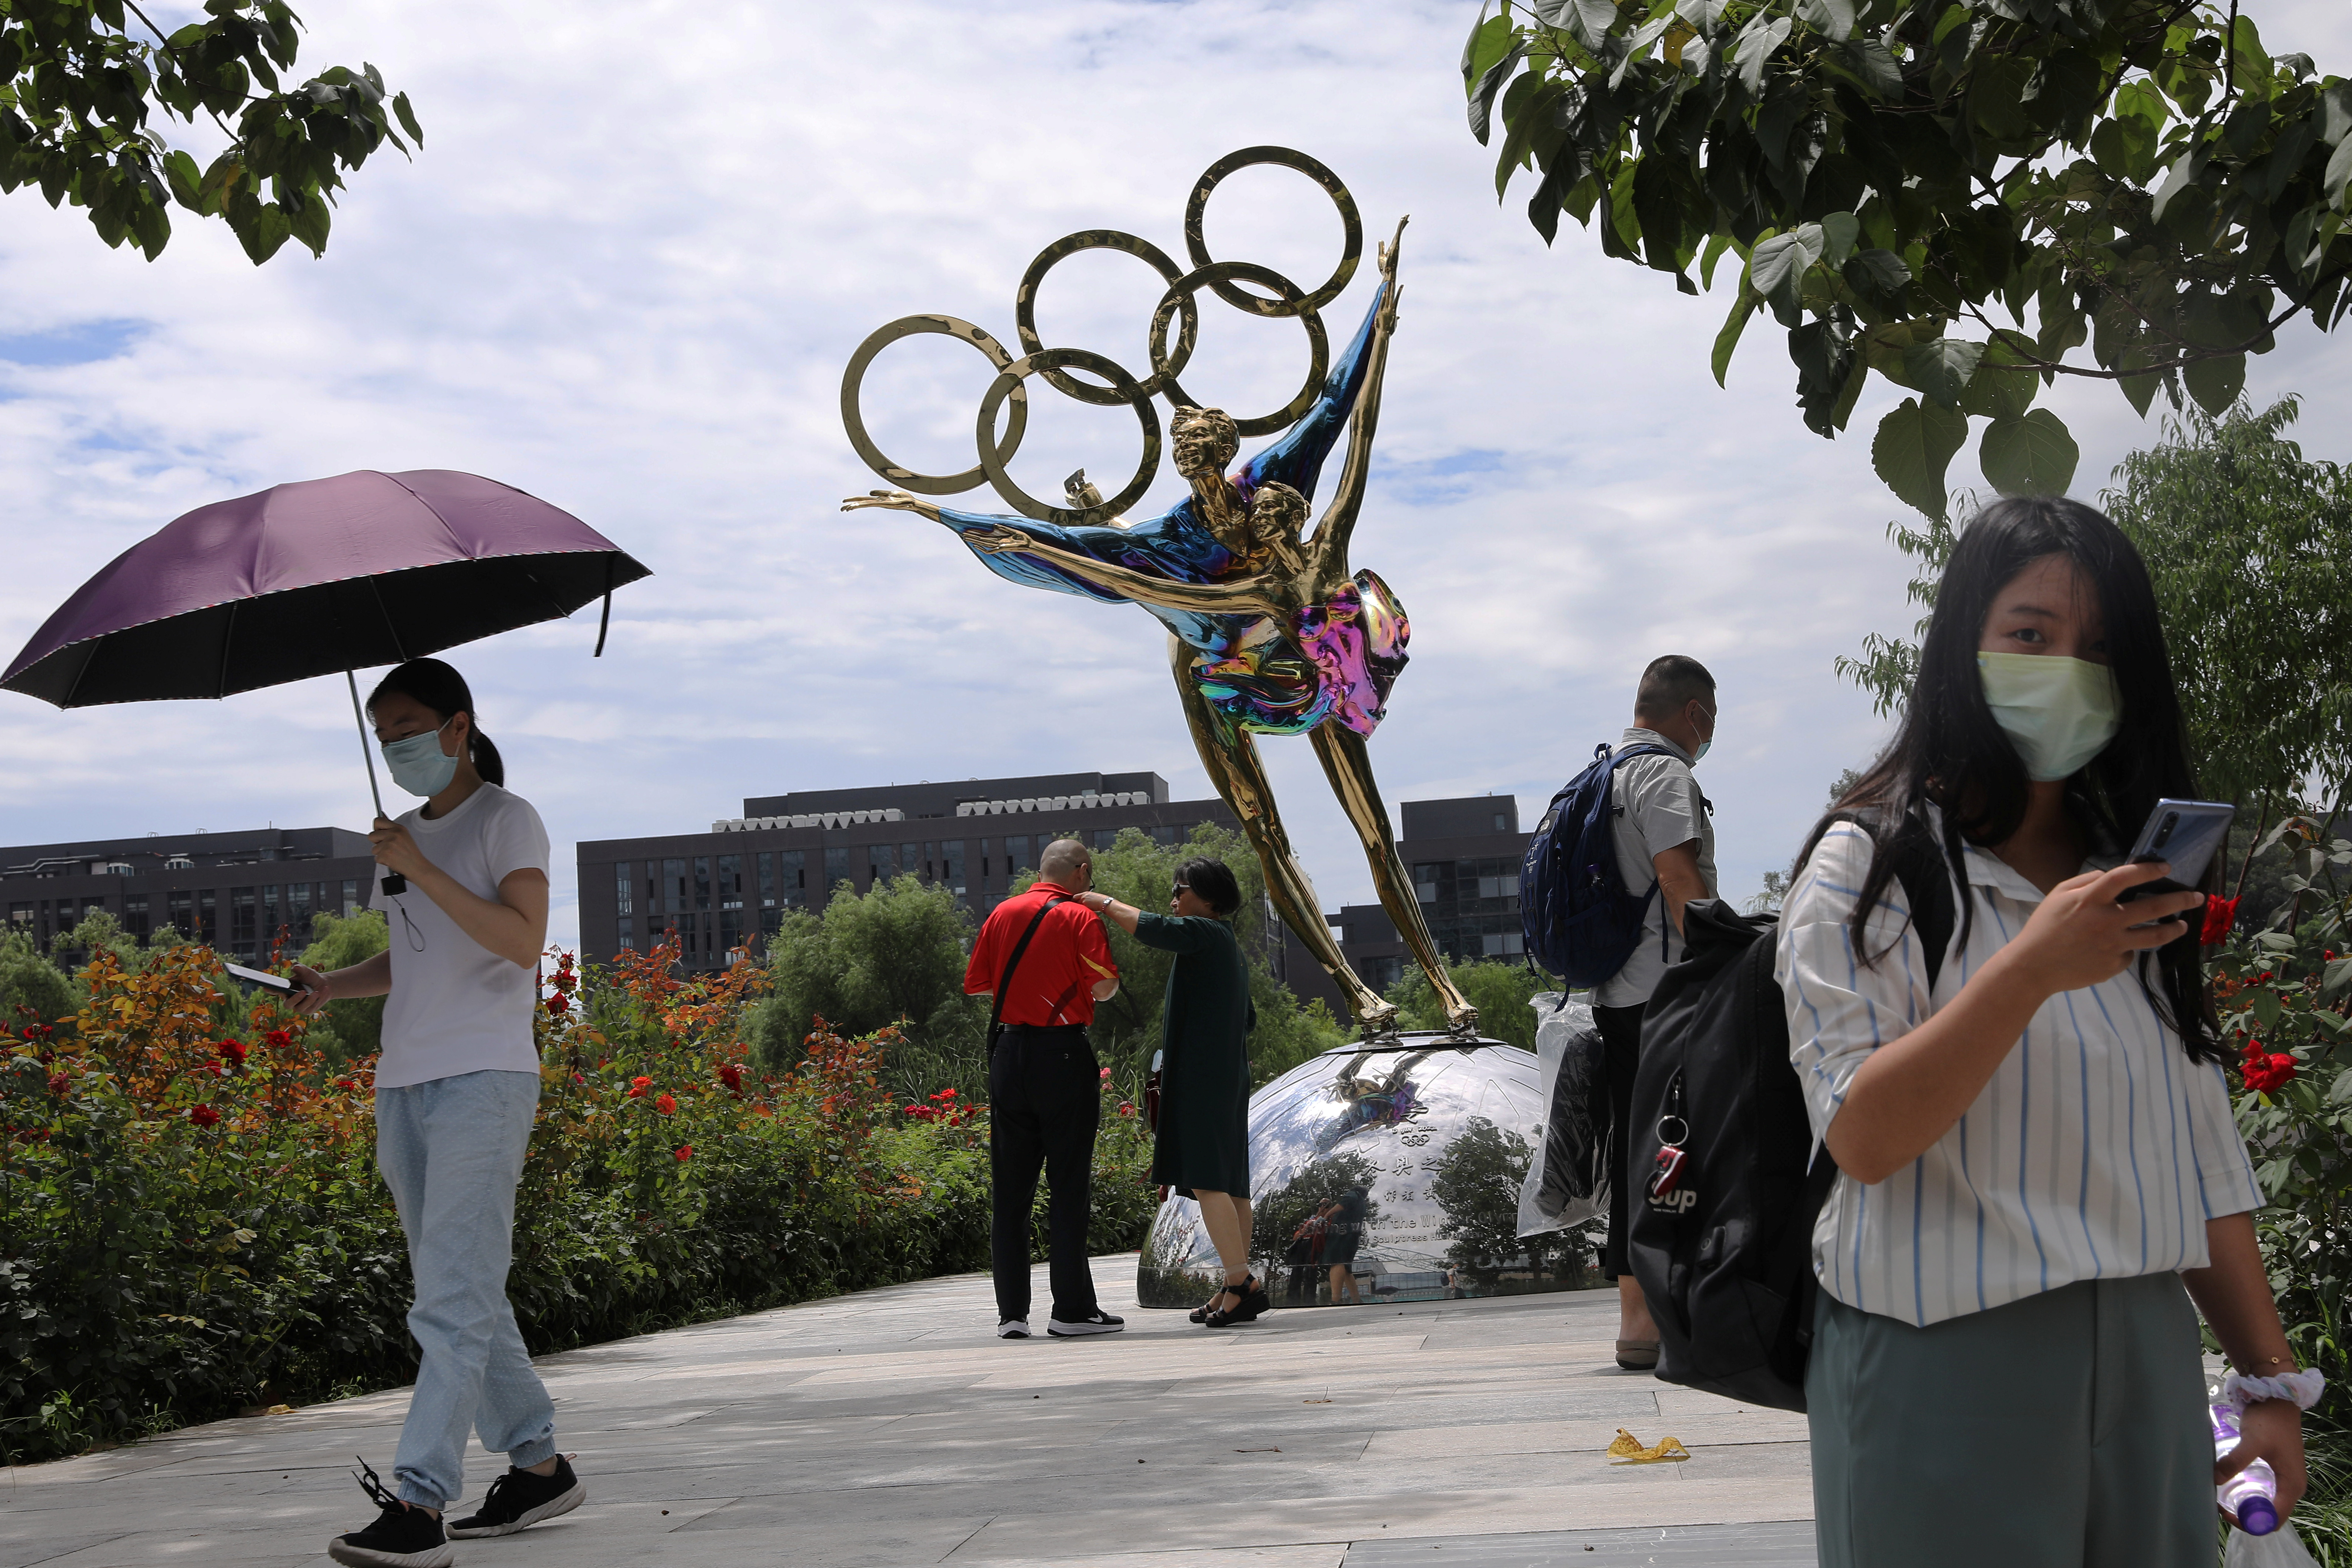 Visitors are seen next to a sculpture featuring skates outside the headquarters of Beijing Organising Committee for the Beijing 2022 Olympic and Paralympic Winter Games in Beijing, China July 30, 2021. REUTERS/Tingshu Wang